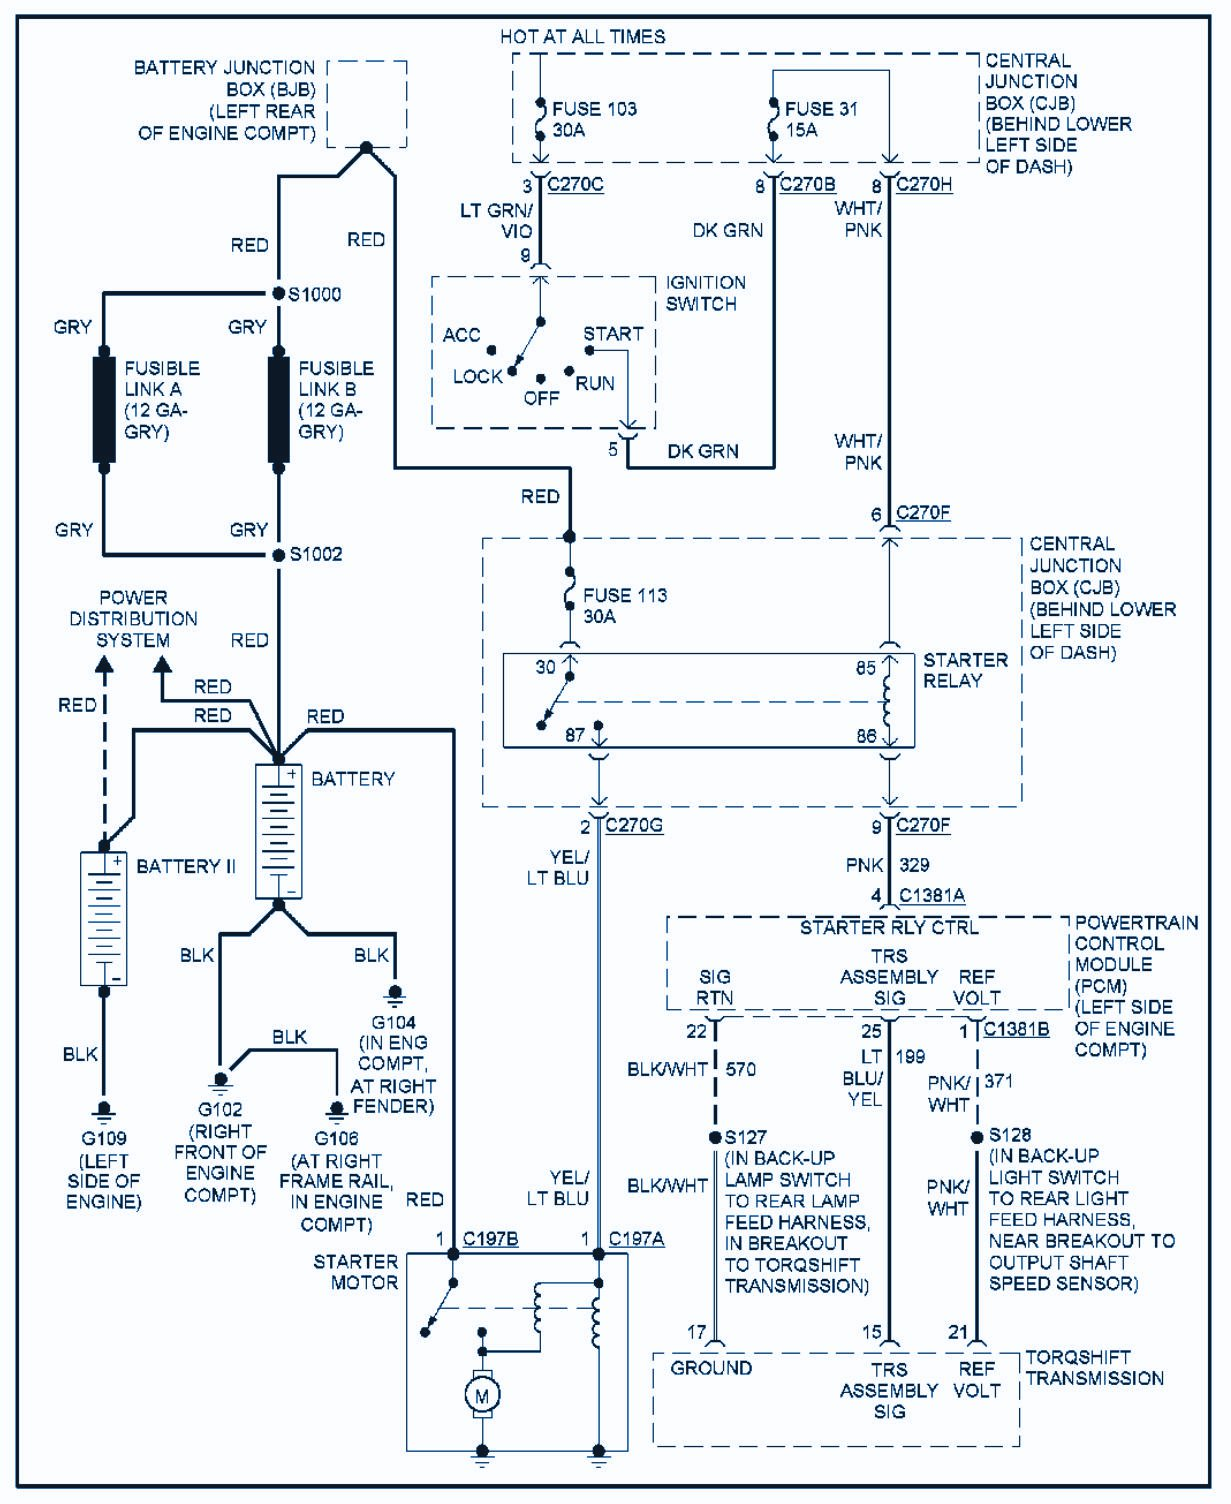 1990 Ford Wiring Diagram FULL Version HD Quality Wiring Diagram -  VALEDIAGRAM.AS4A.FRAS4A.FR